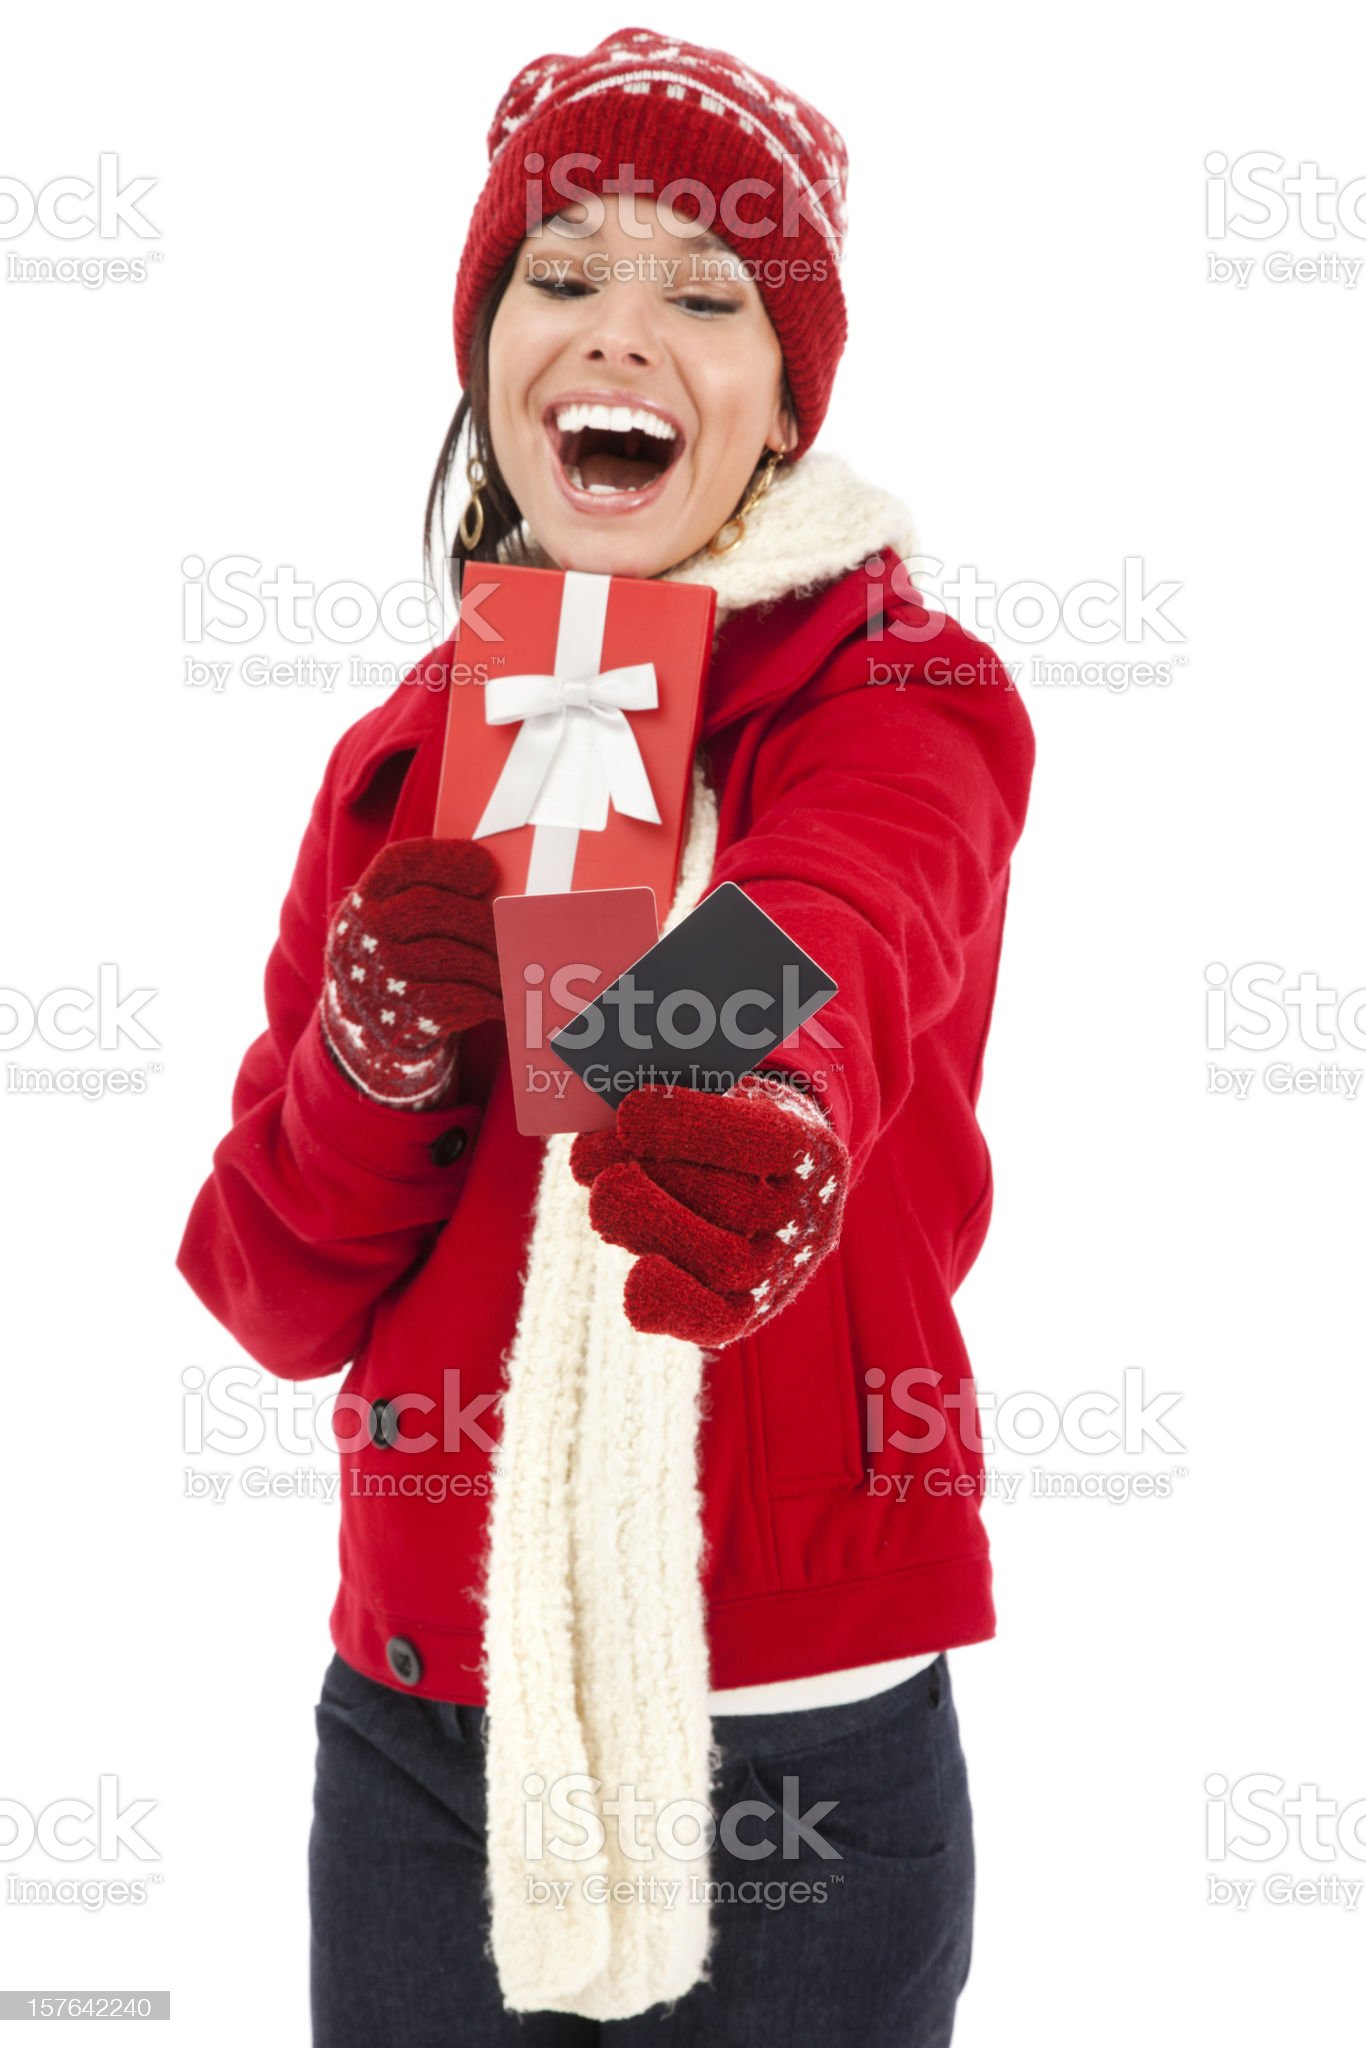 Attractive Young Woman with Gift Cards and Box royalty-free stock photo